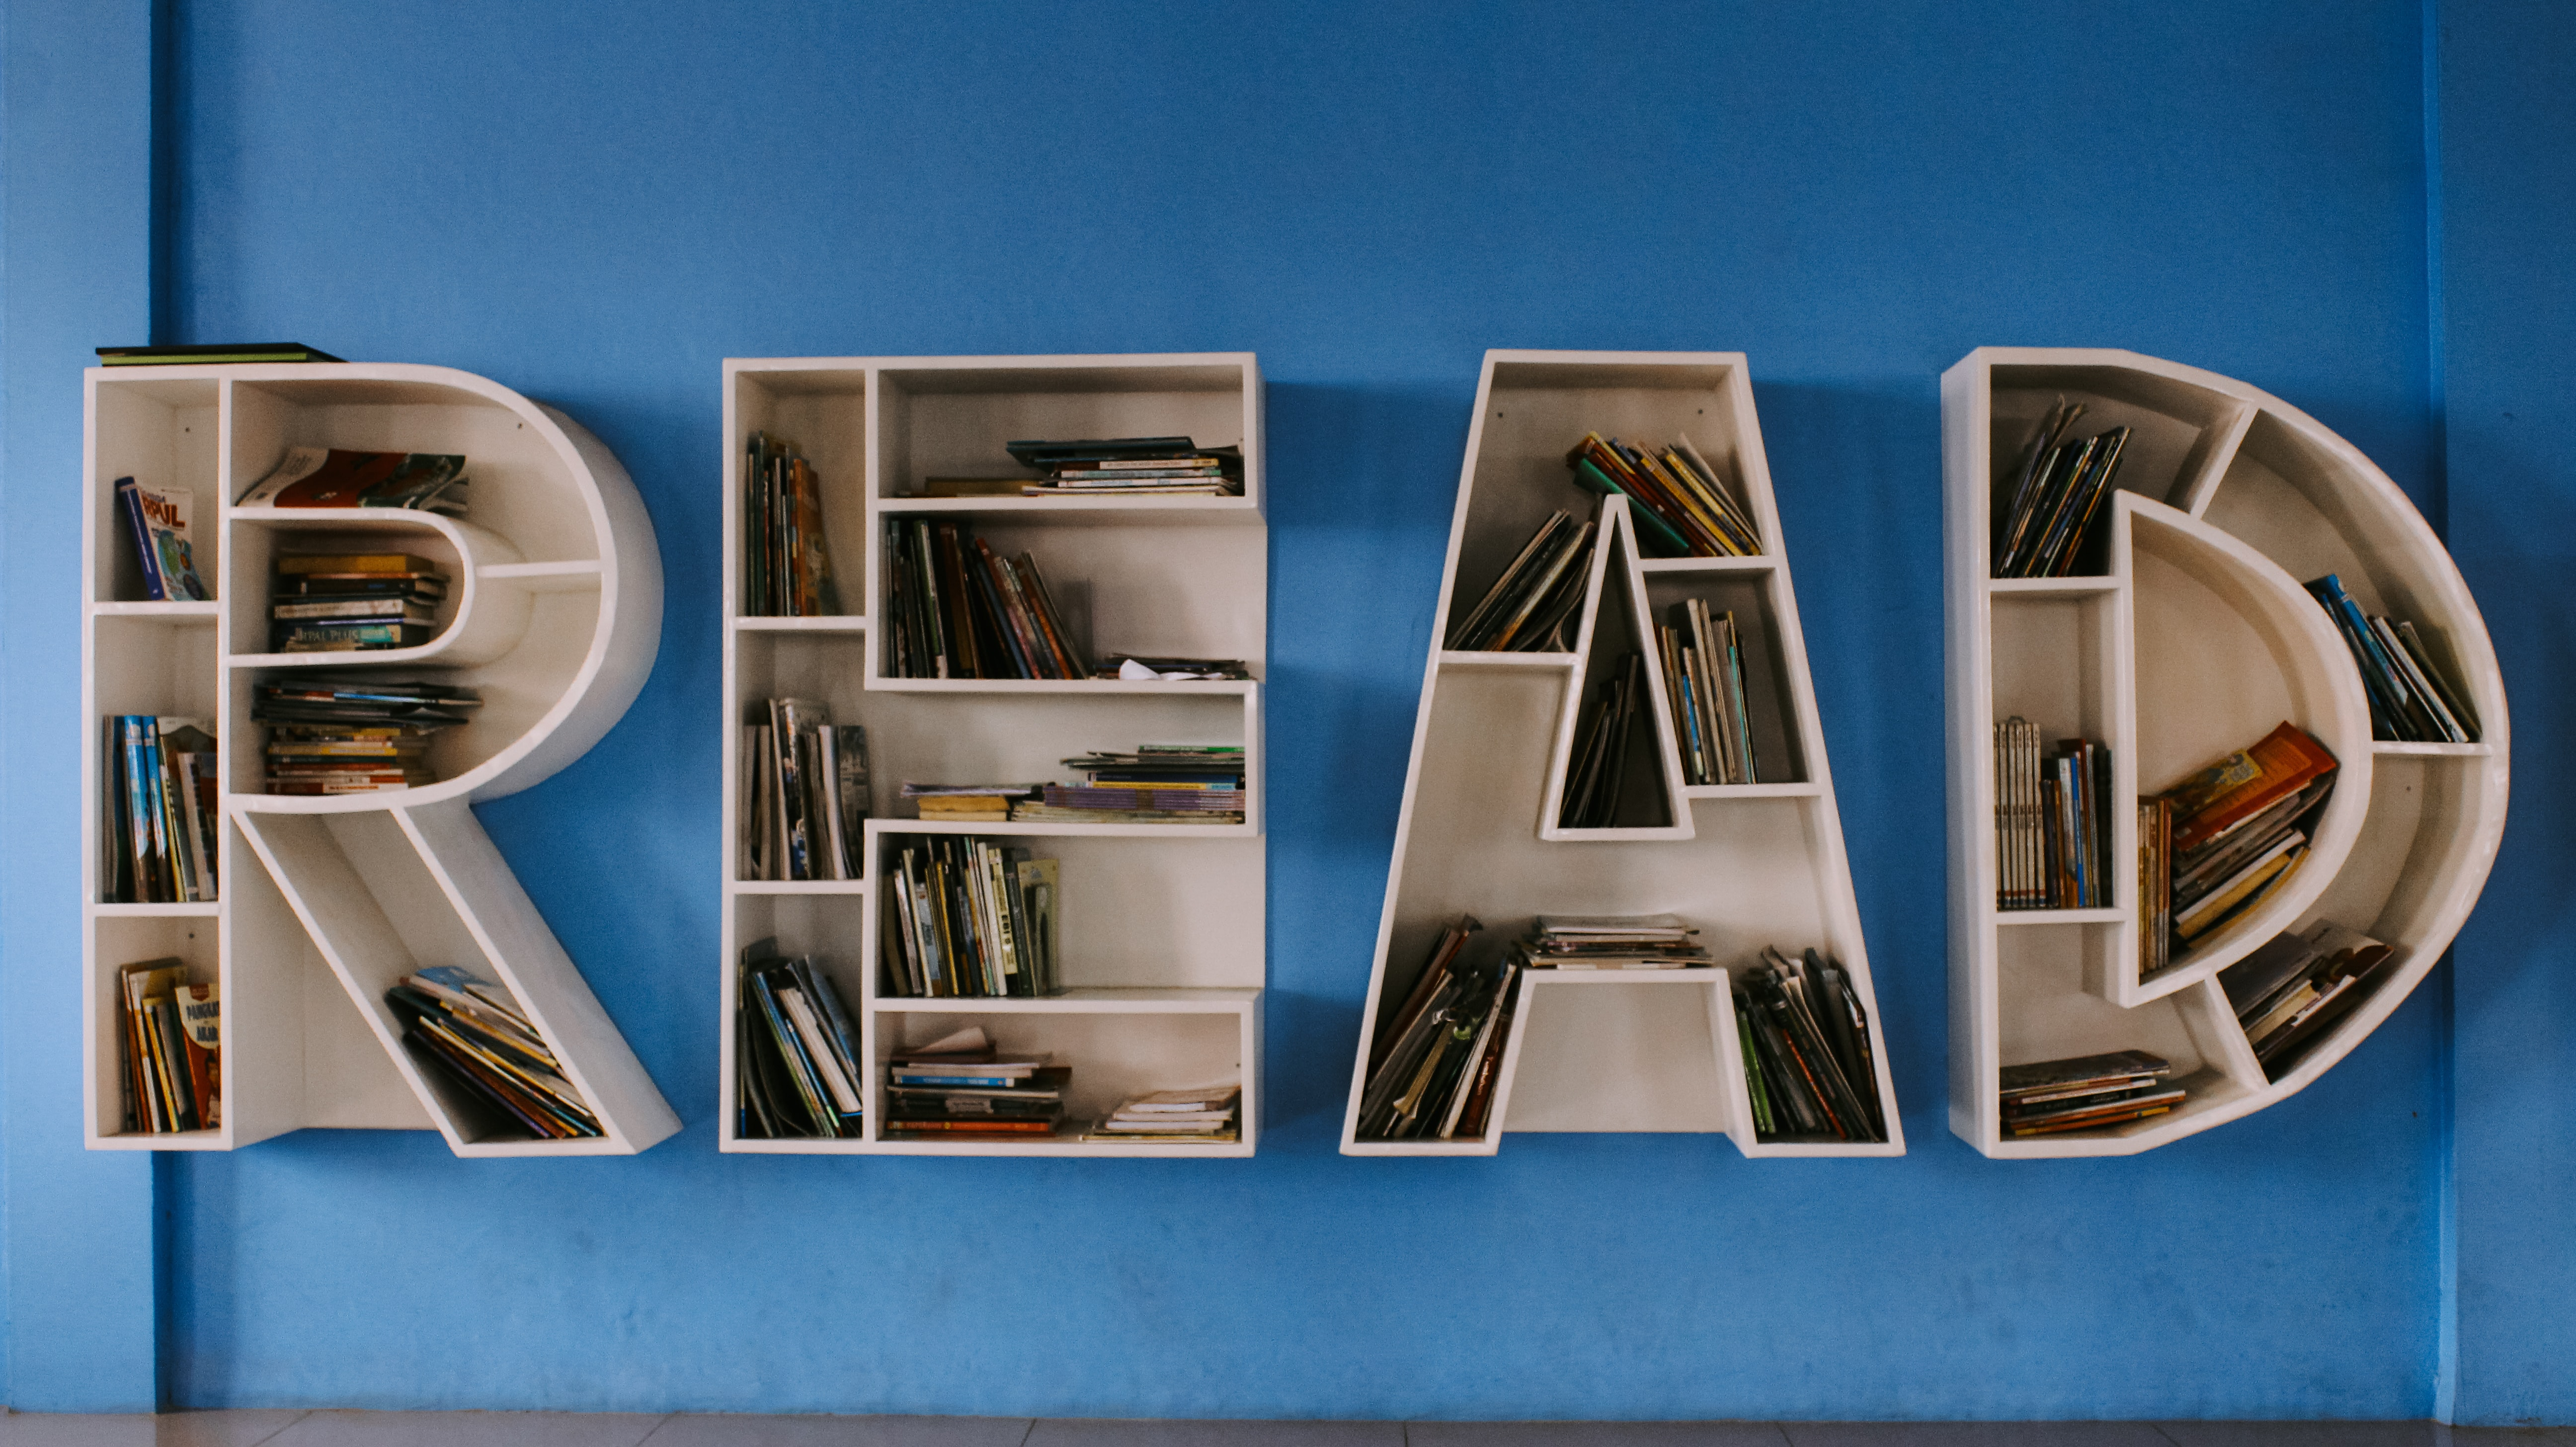 """Shelves in the shape of letters that spell """"Read"""" with books inside each letter on a blue wall"""